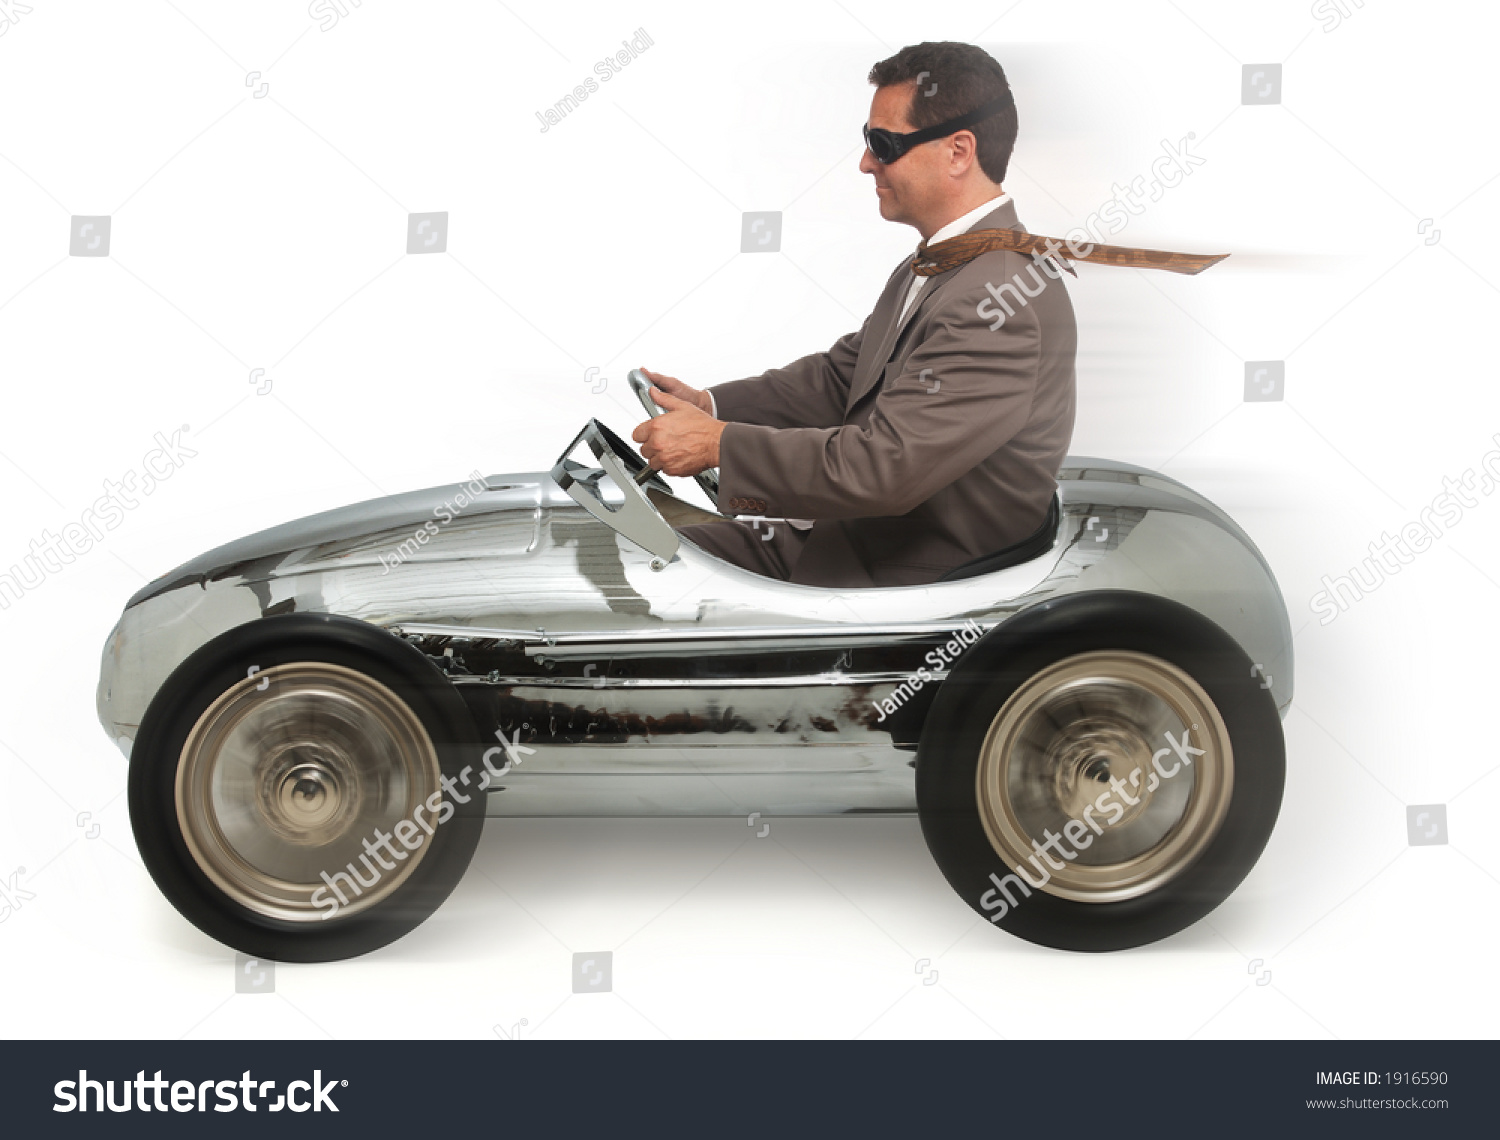 Adult Pedal Car: Adult Man In Child'S Pedal Car On White Background Stock